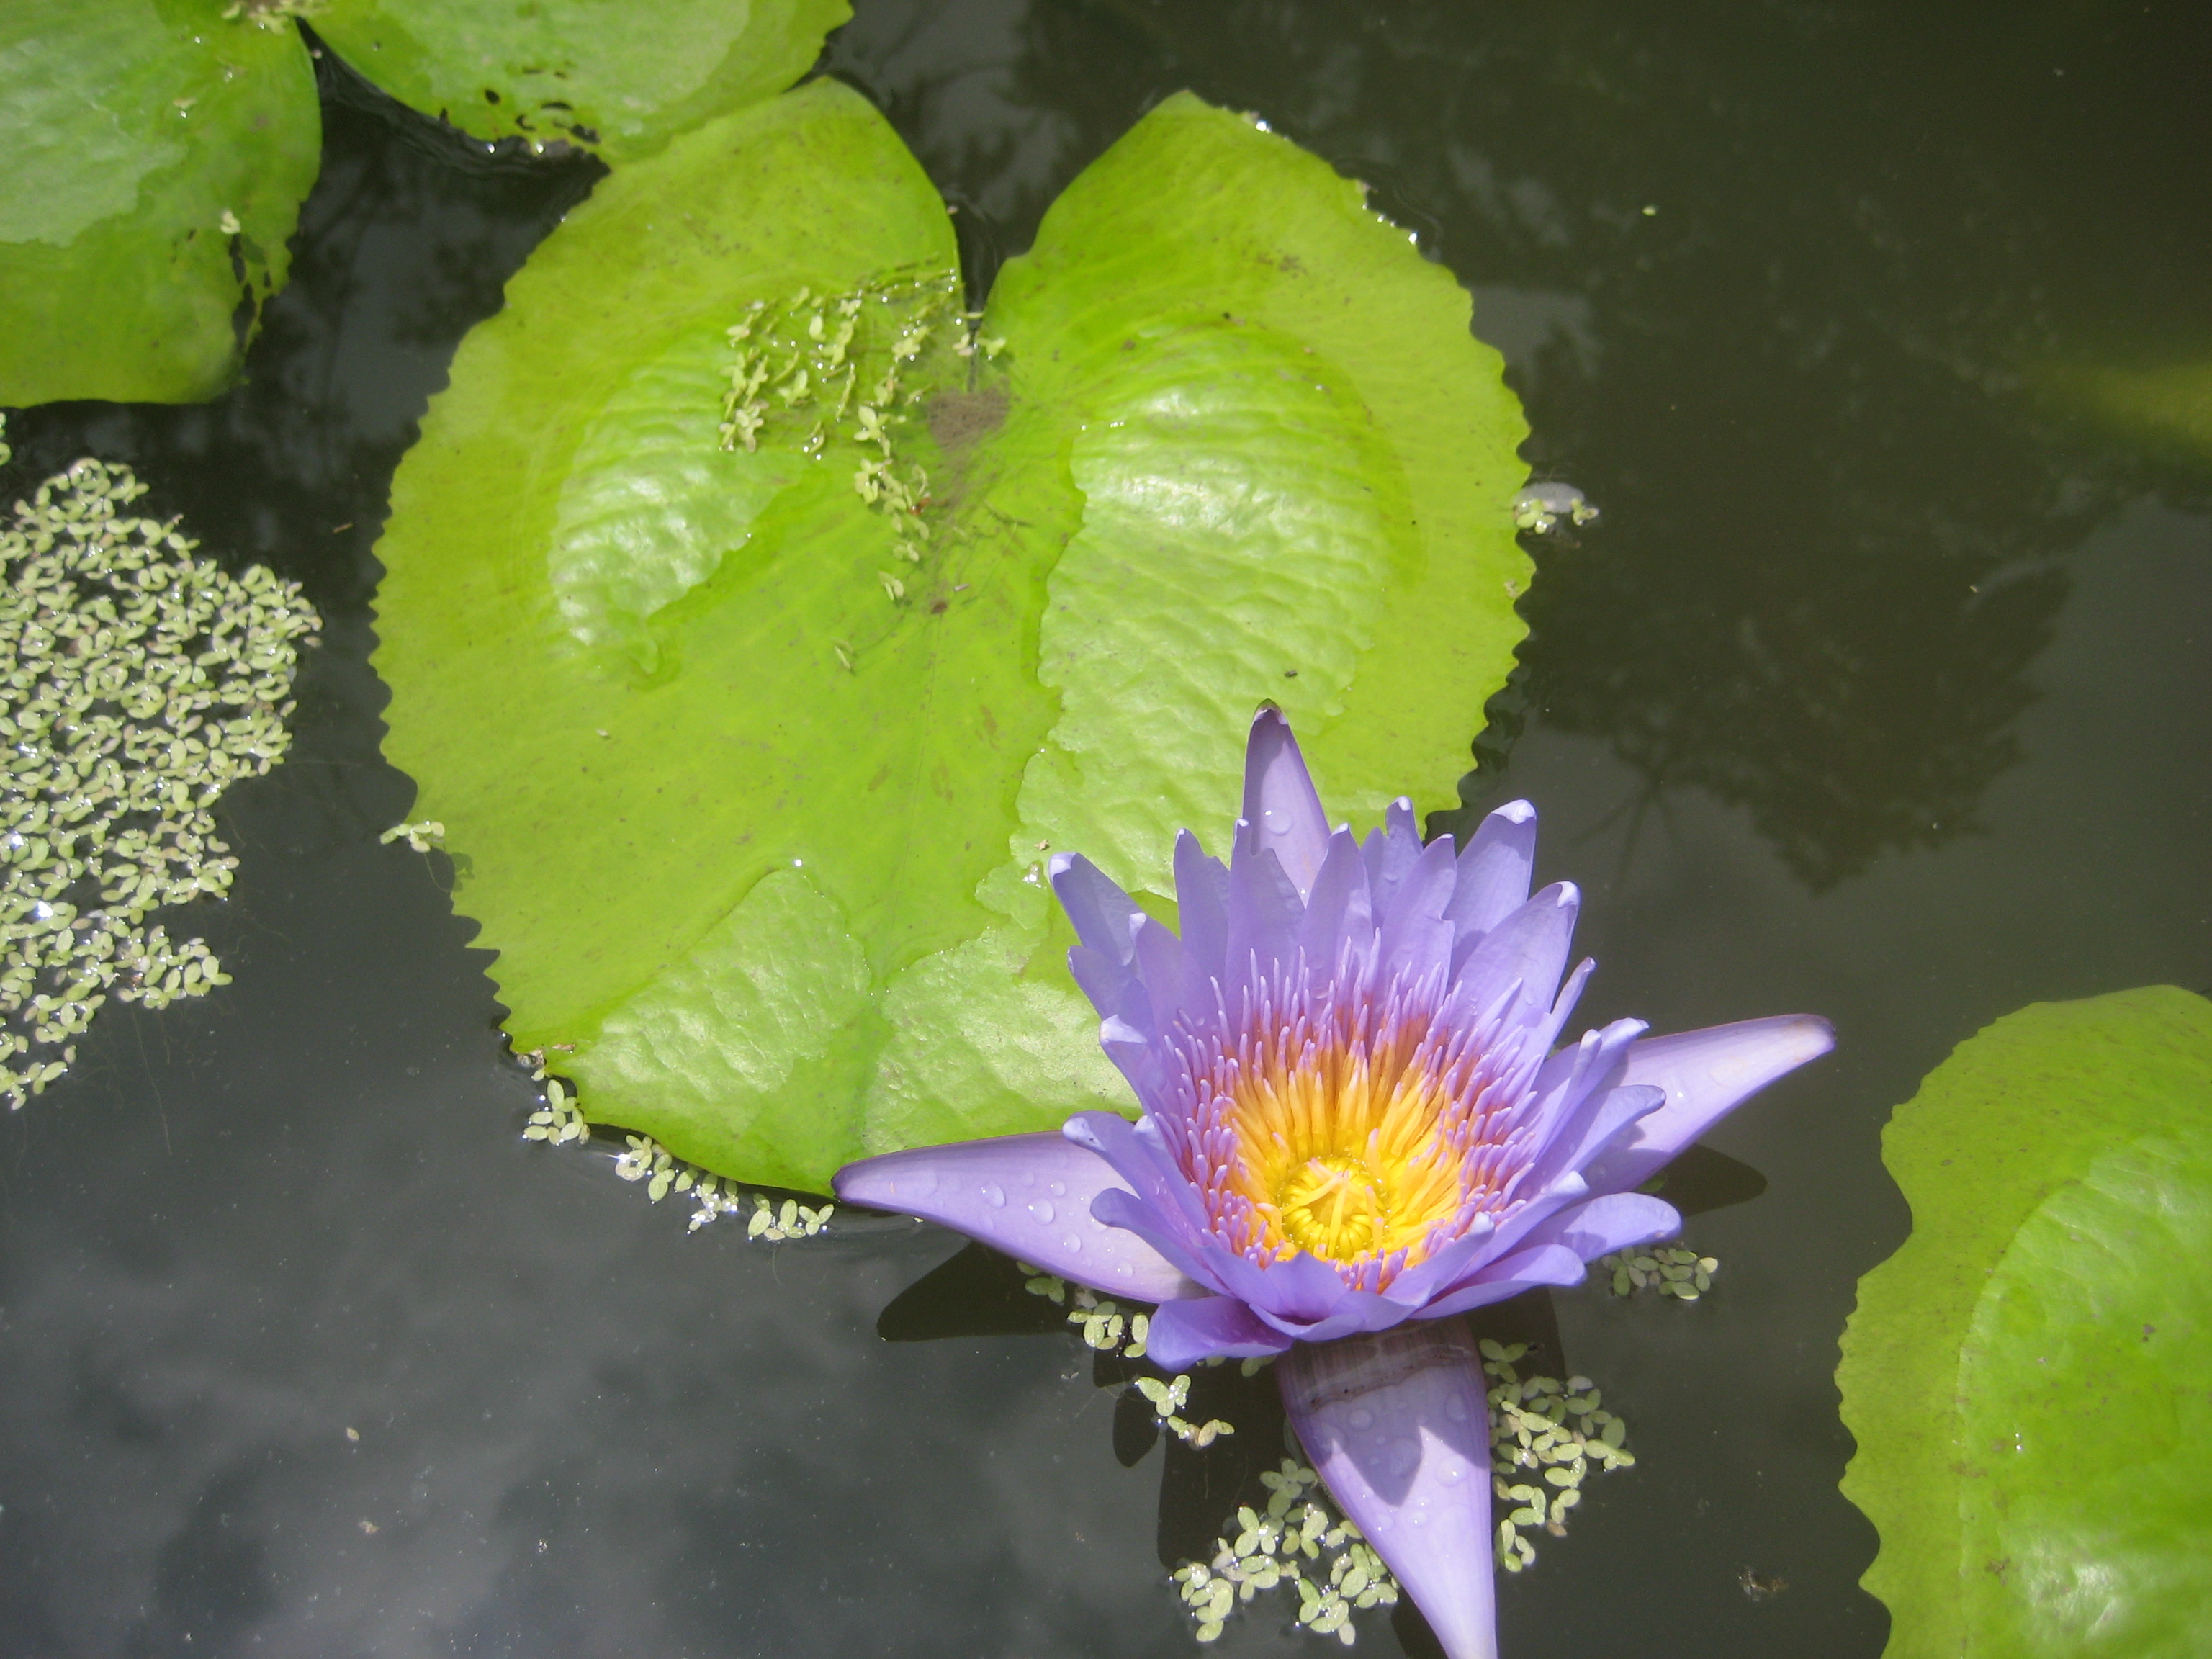 e of the most popular flowers in Thailand